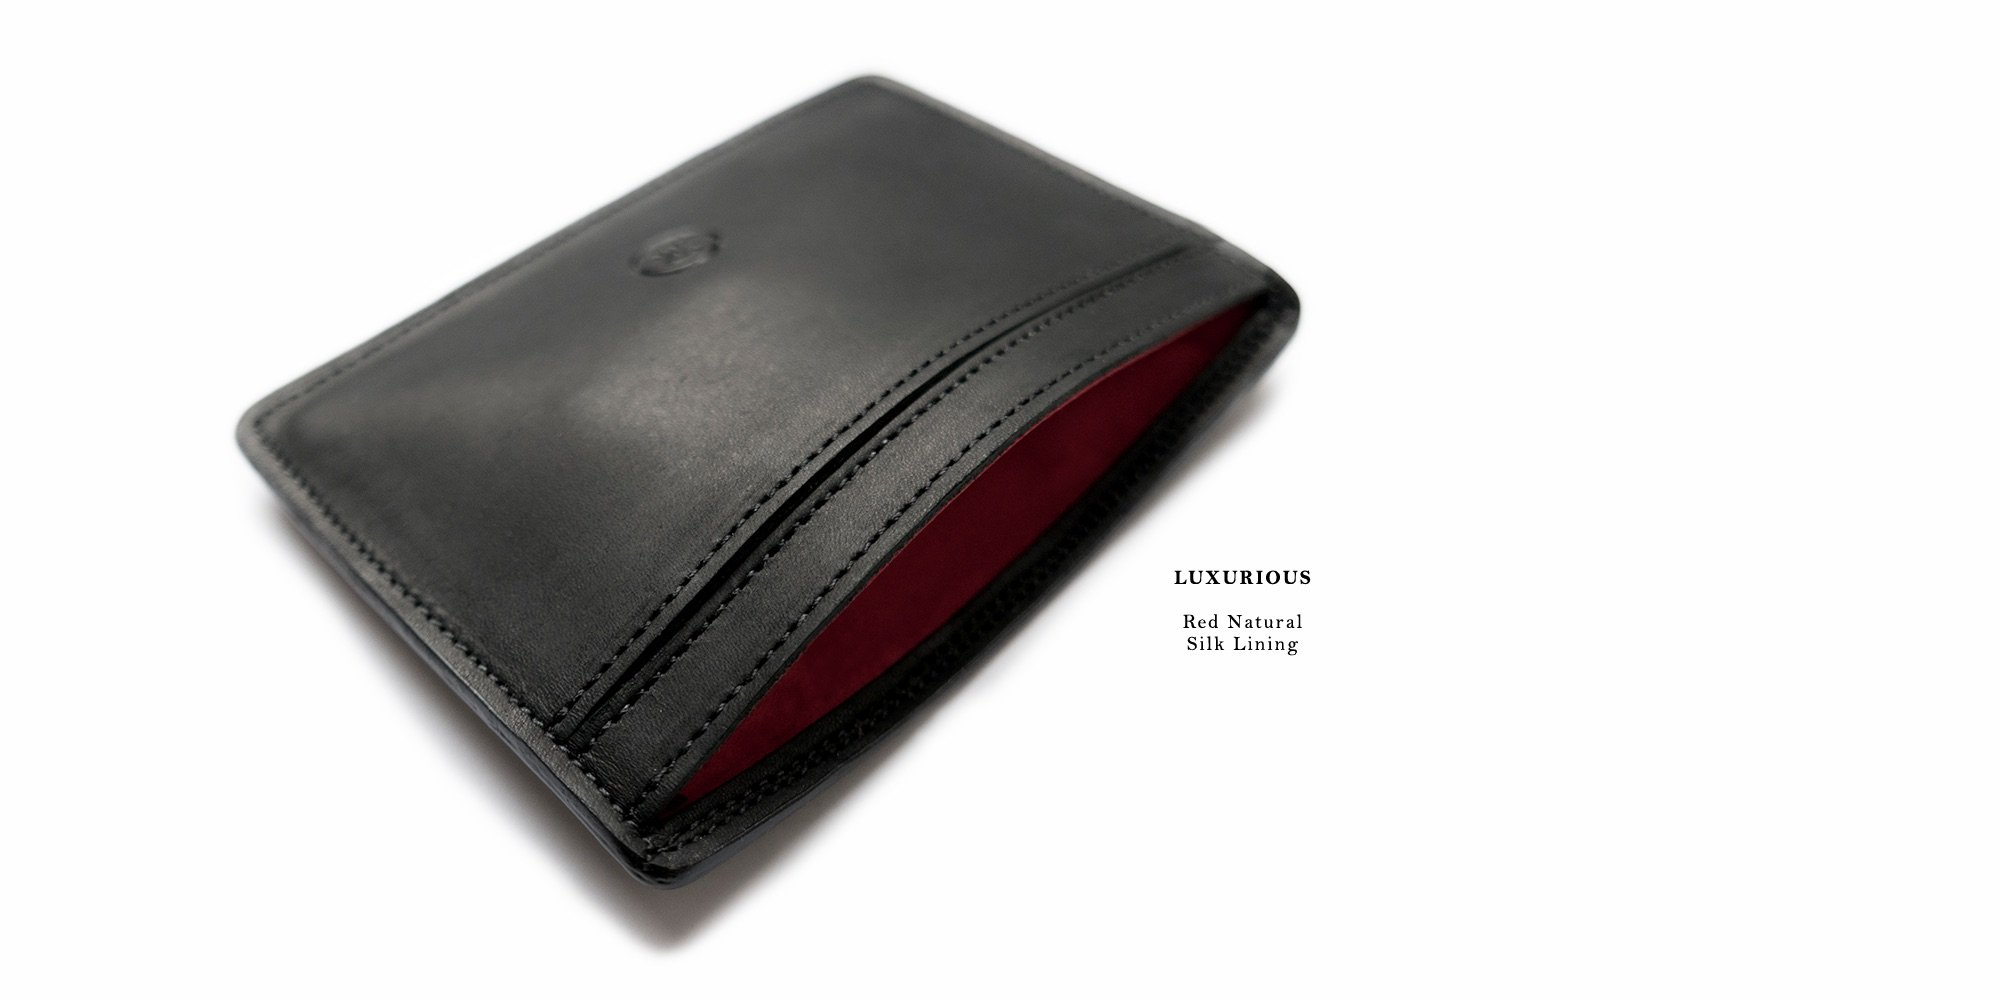 malle_limited_edition_passport_wallet_8